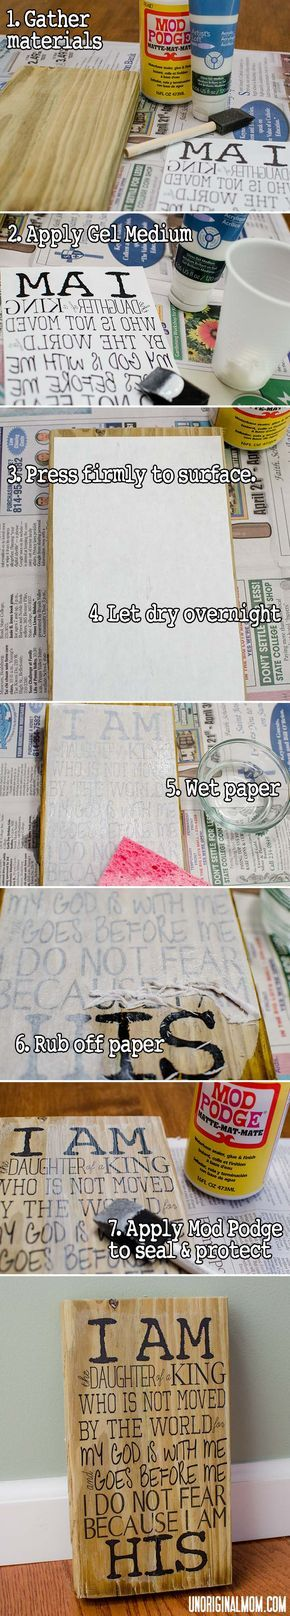 how to use mod podge photo transfer medium on canvas